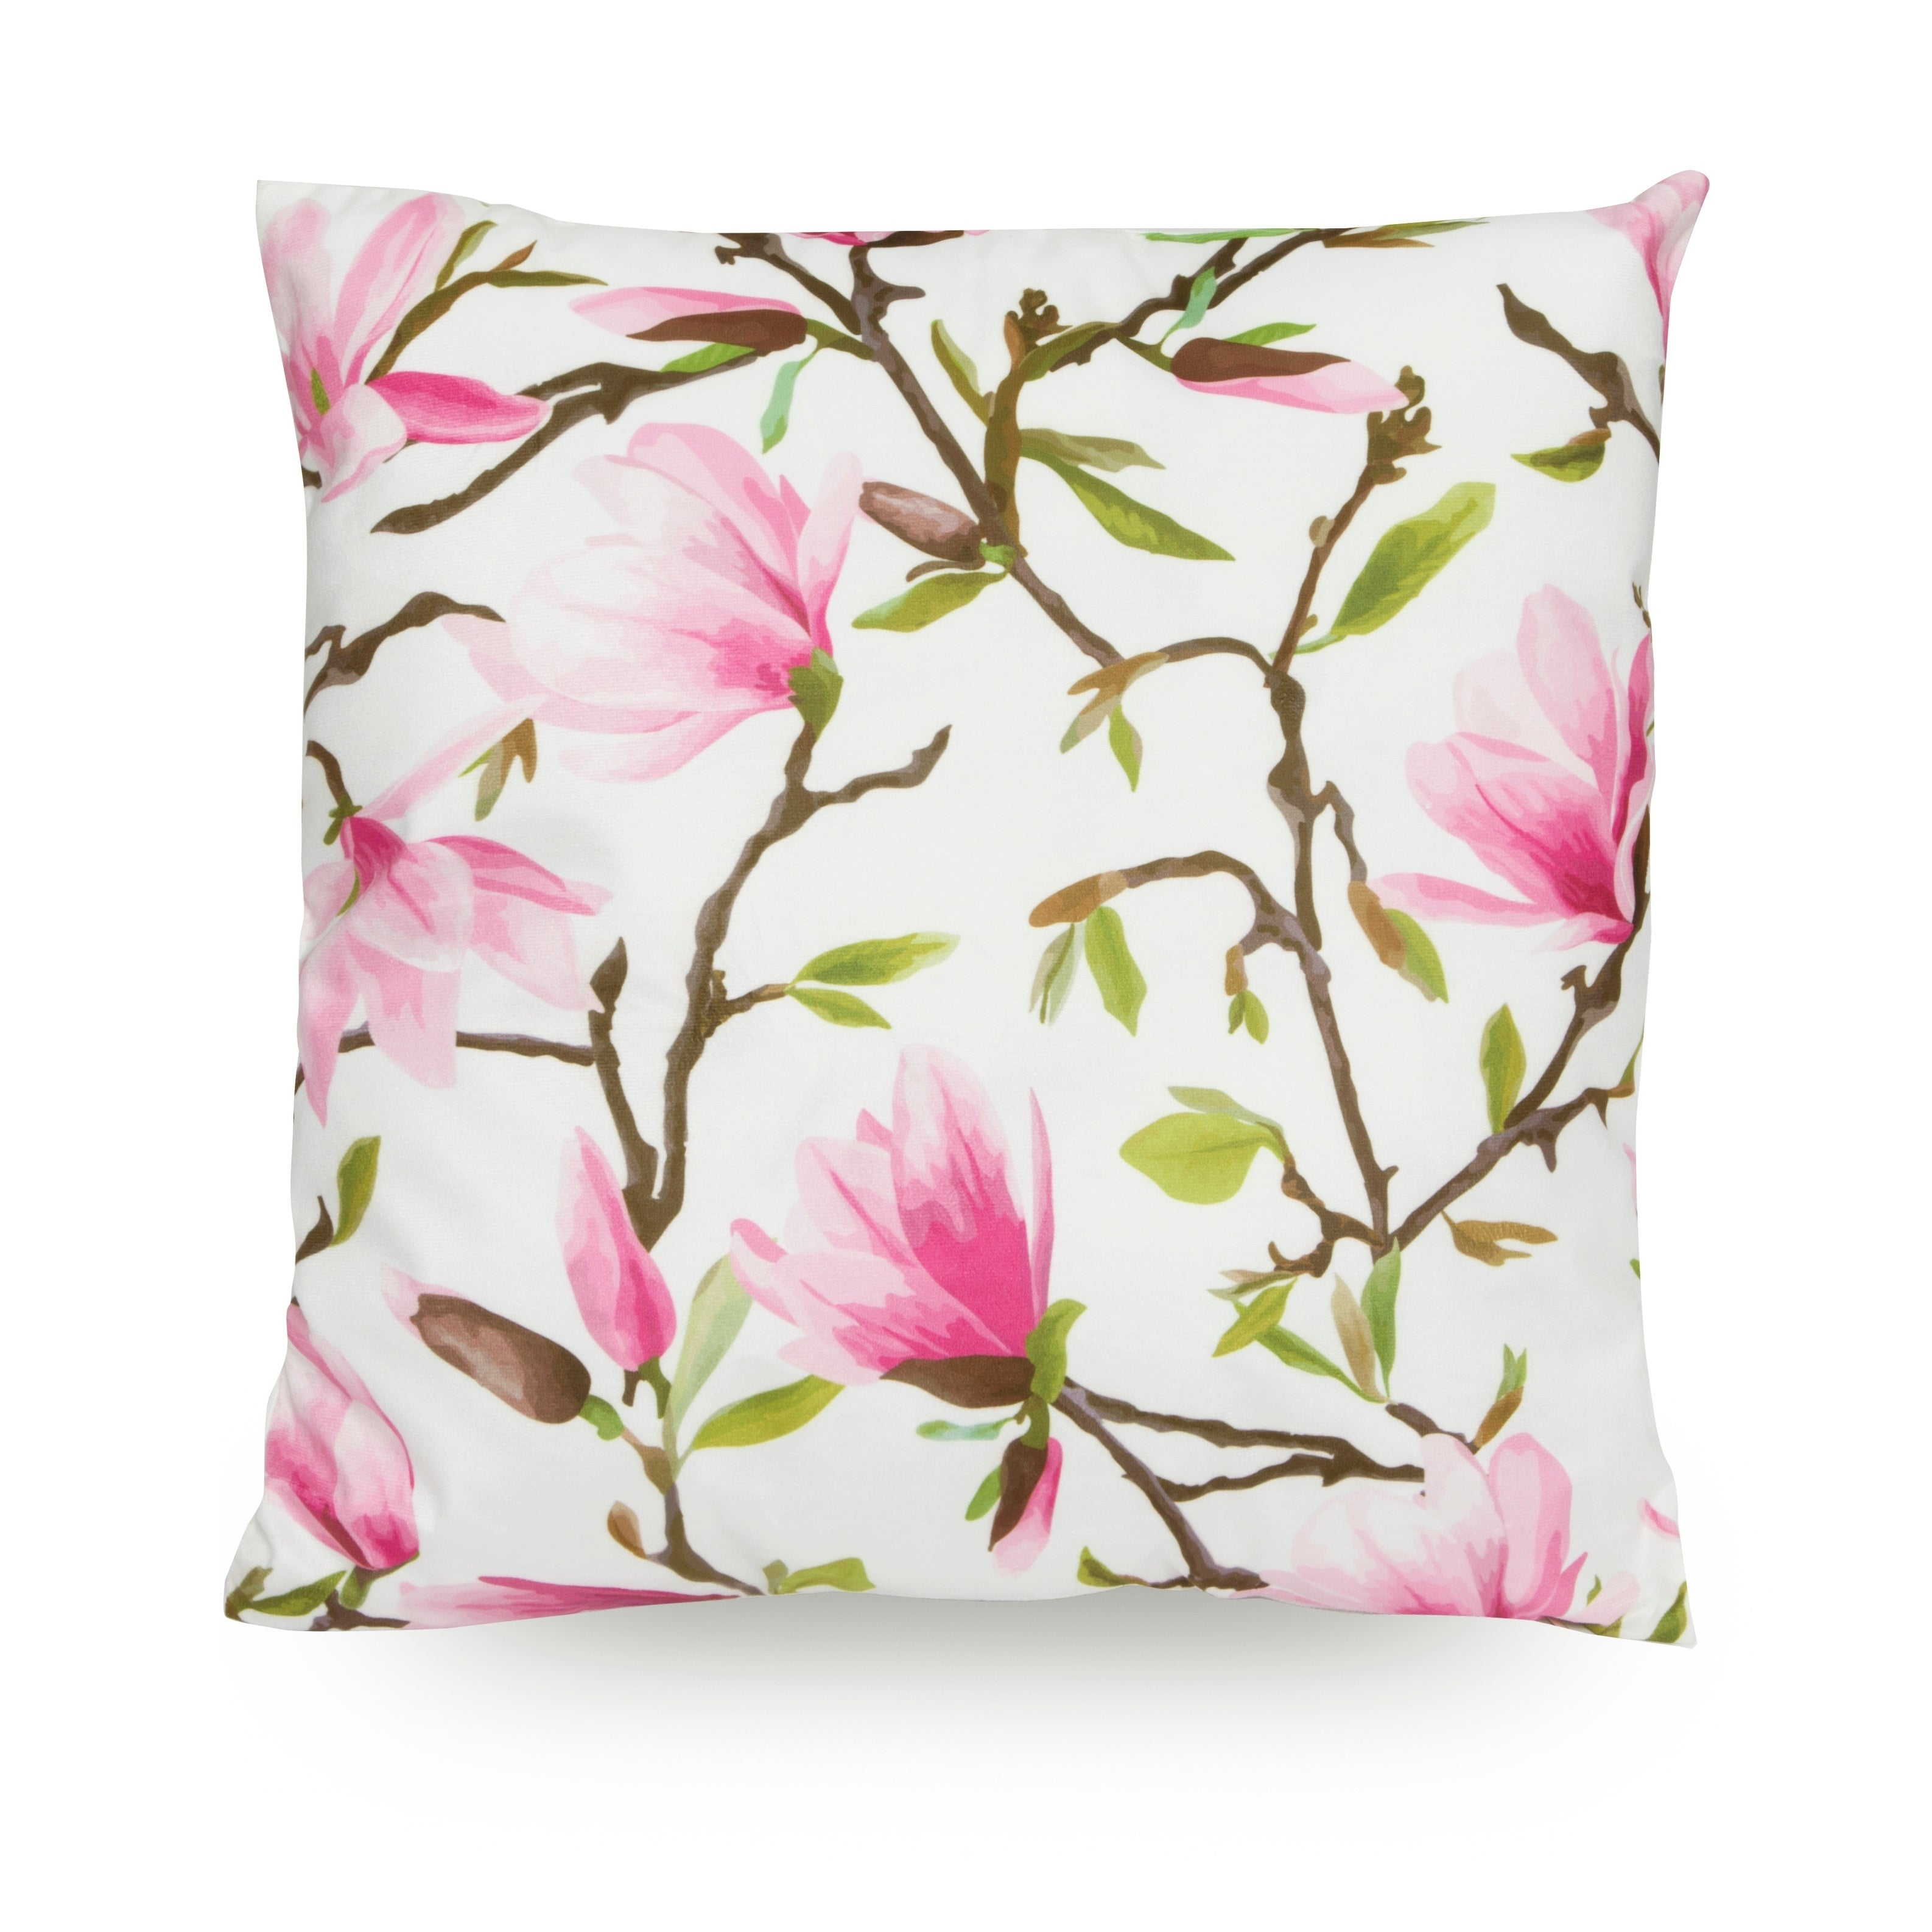 Magnolia Flower 18 Microfiber Throw Pillow Cover Free Shipping On Orders Over 45 18658748